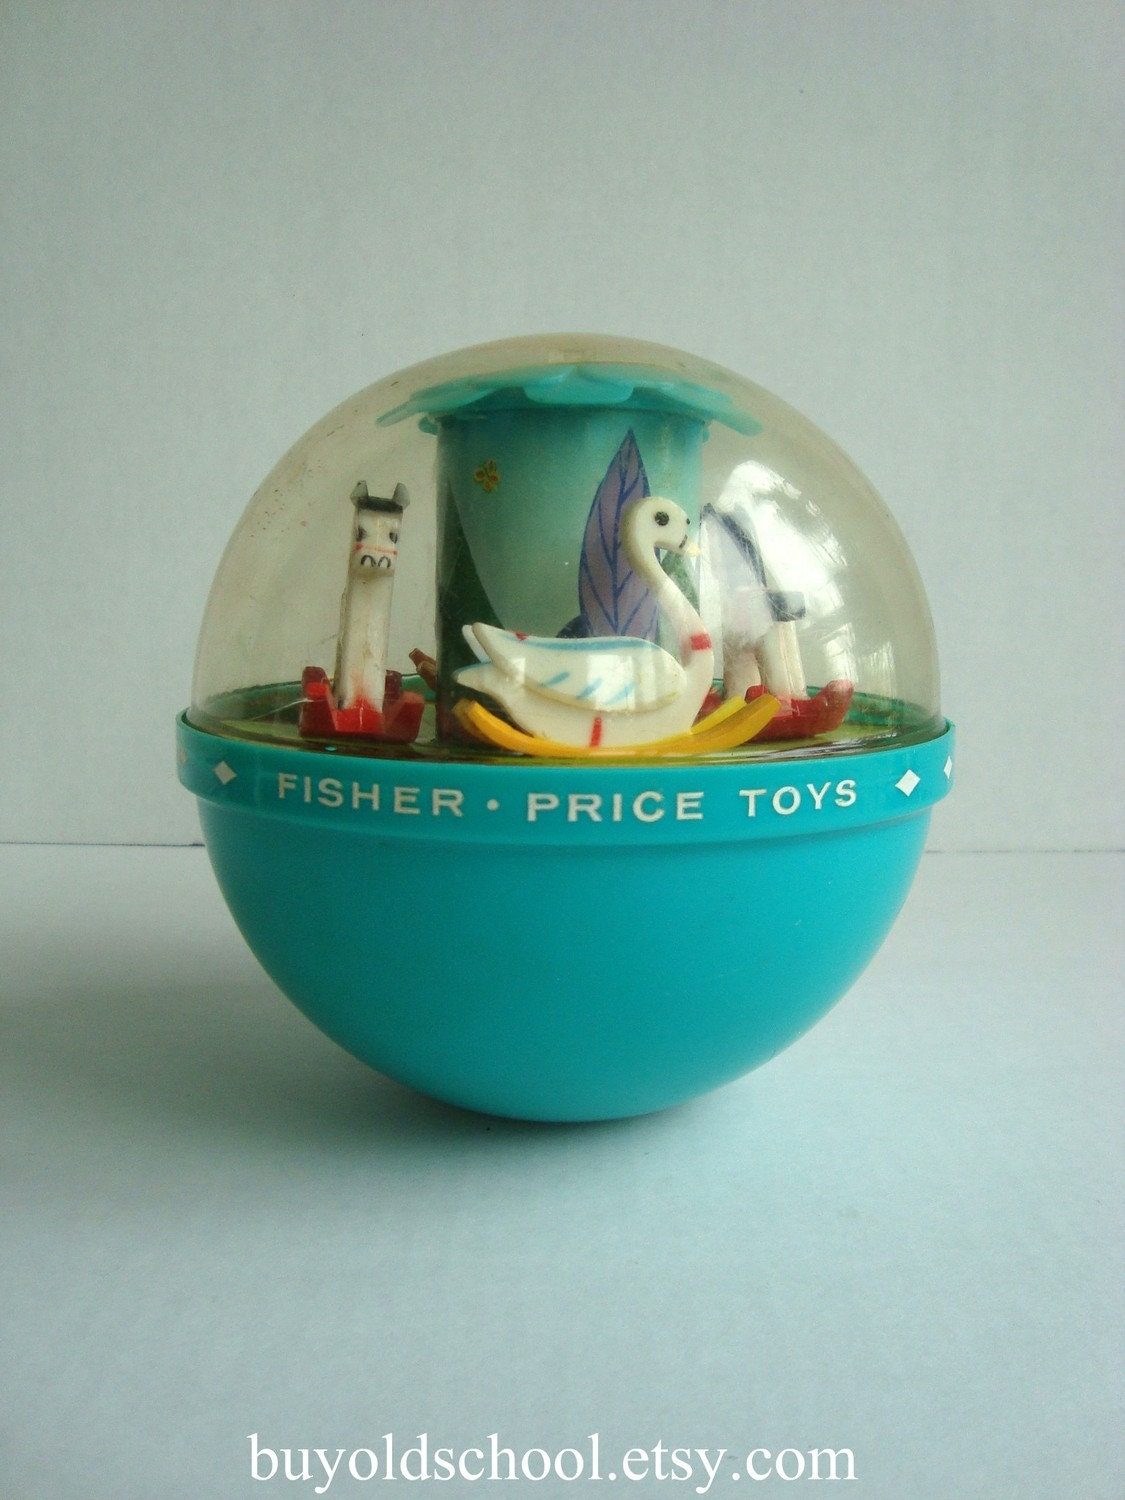 1966 Fisher Price Toys Vintage Roly Poly Chime Ball